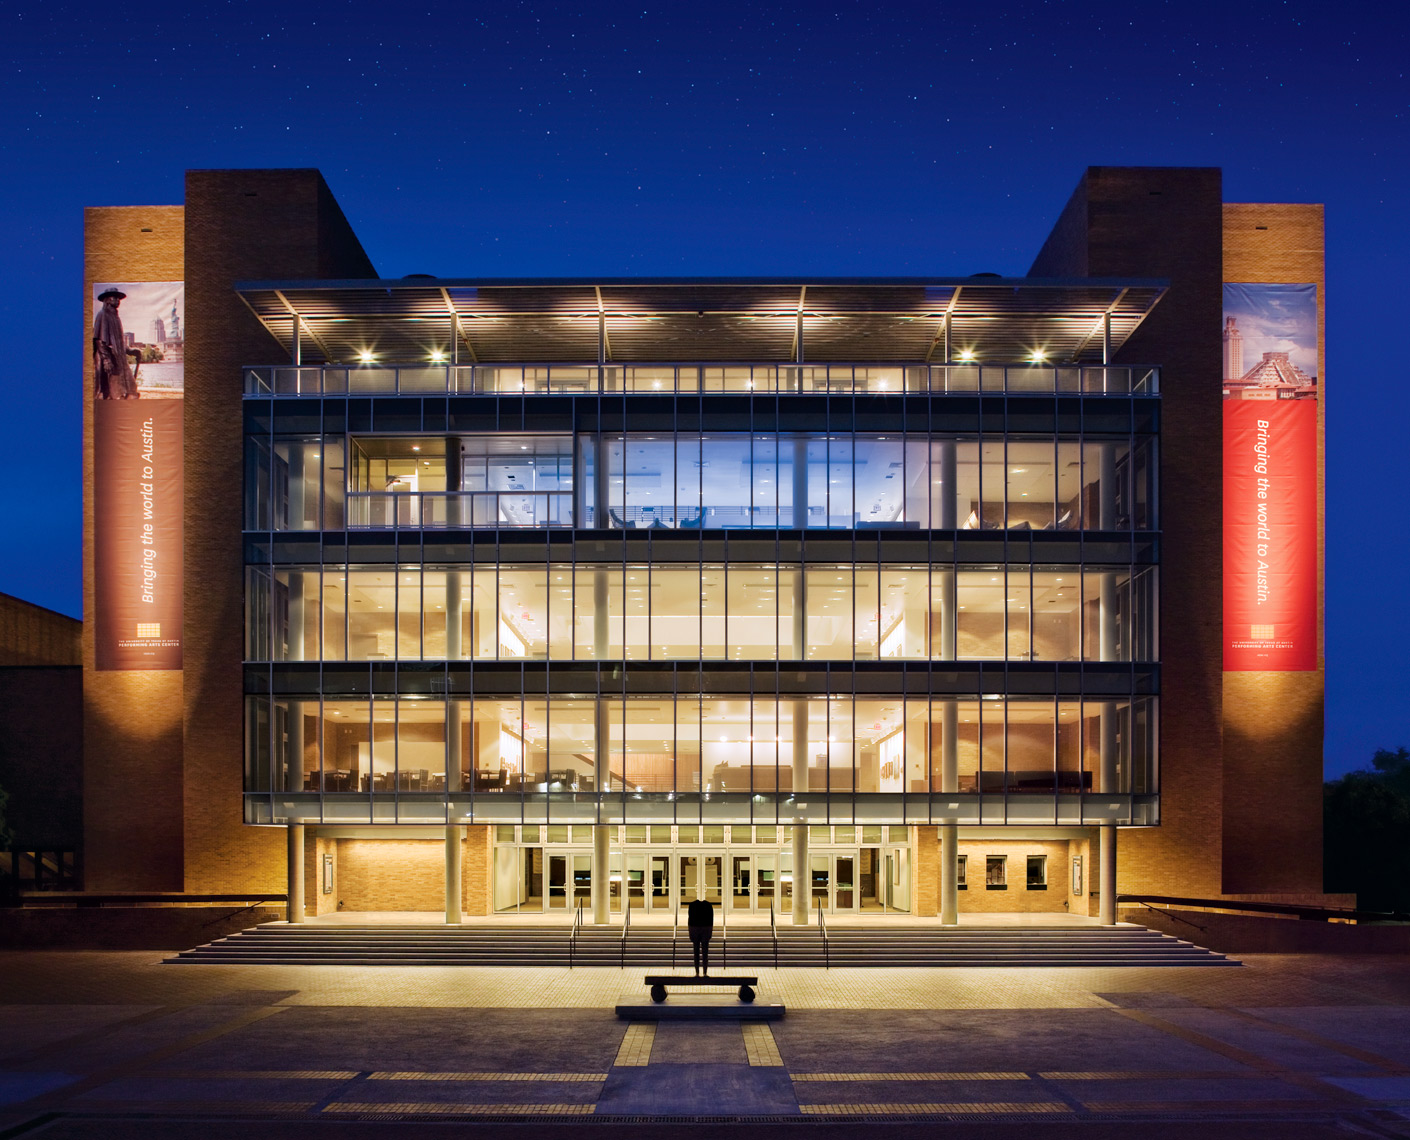 Bass Concert Hall at night | University of Texas Austin | Park Street Photography